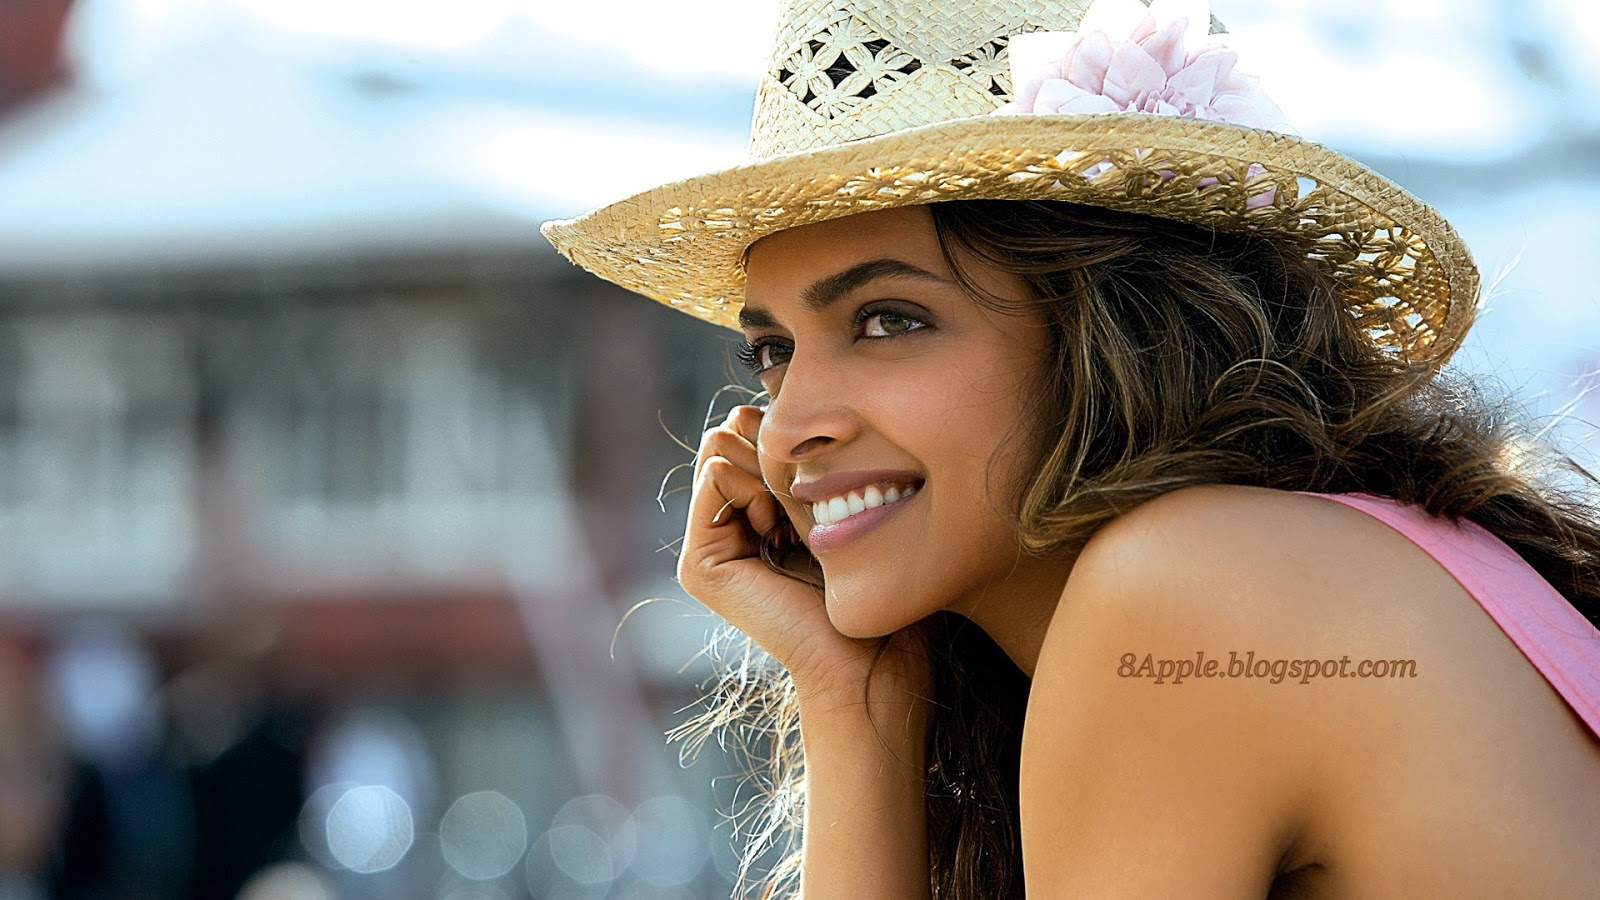 http://4.bp.blogspot.com/-buZg6ovkZw0/UKUSI889gsI/AAAAAAAAFec/s_9vpFu_yKM/s1600/DEEPIKA+PADUKONE+IN+COCKTAIL+MOVIE+1920x1080++HD+Wallpaper+http8apple.blogspot.com.jpg